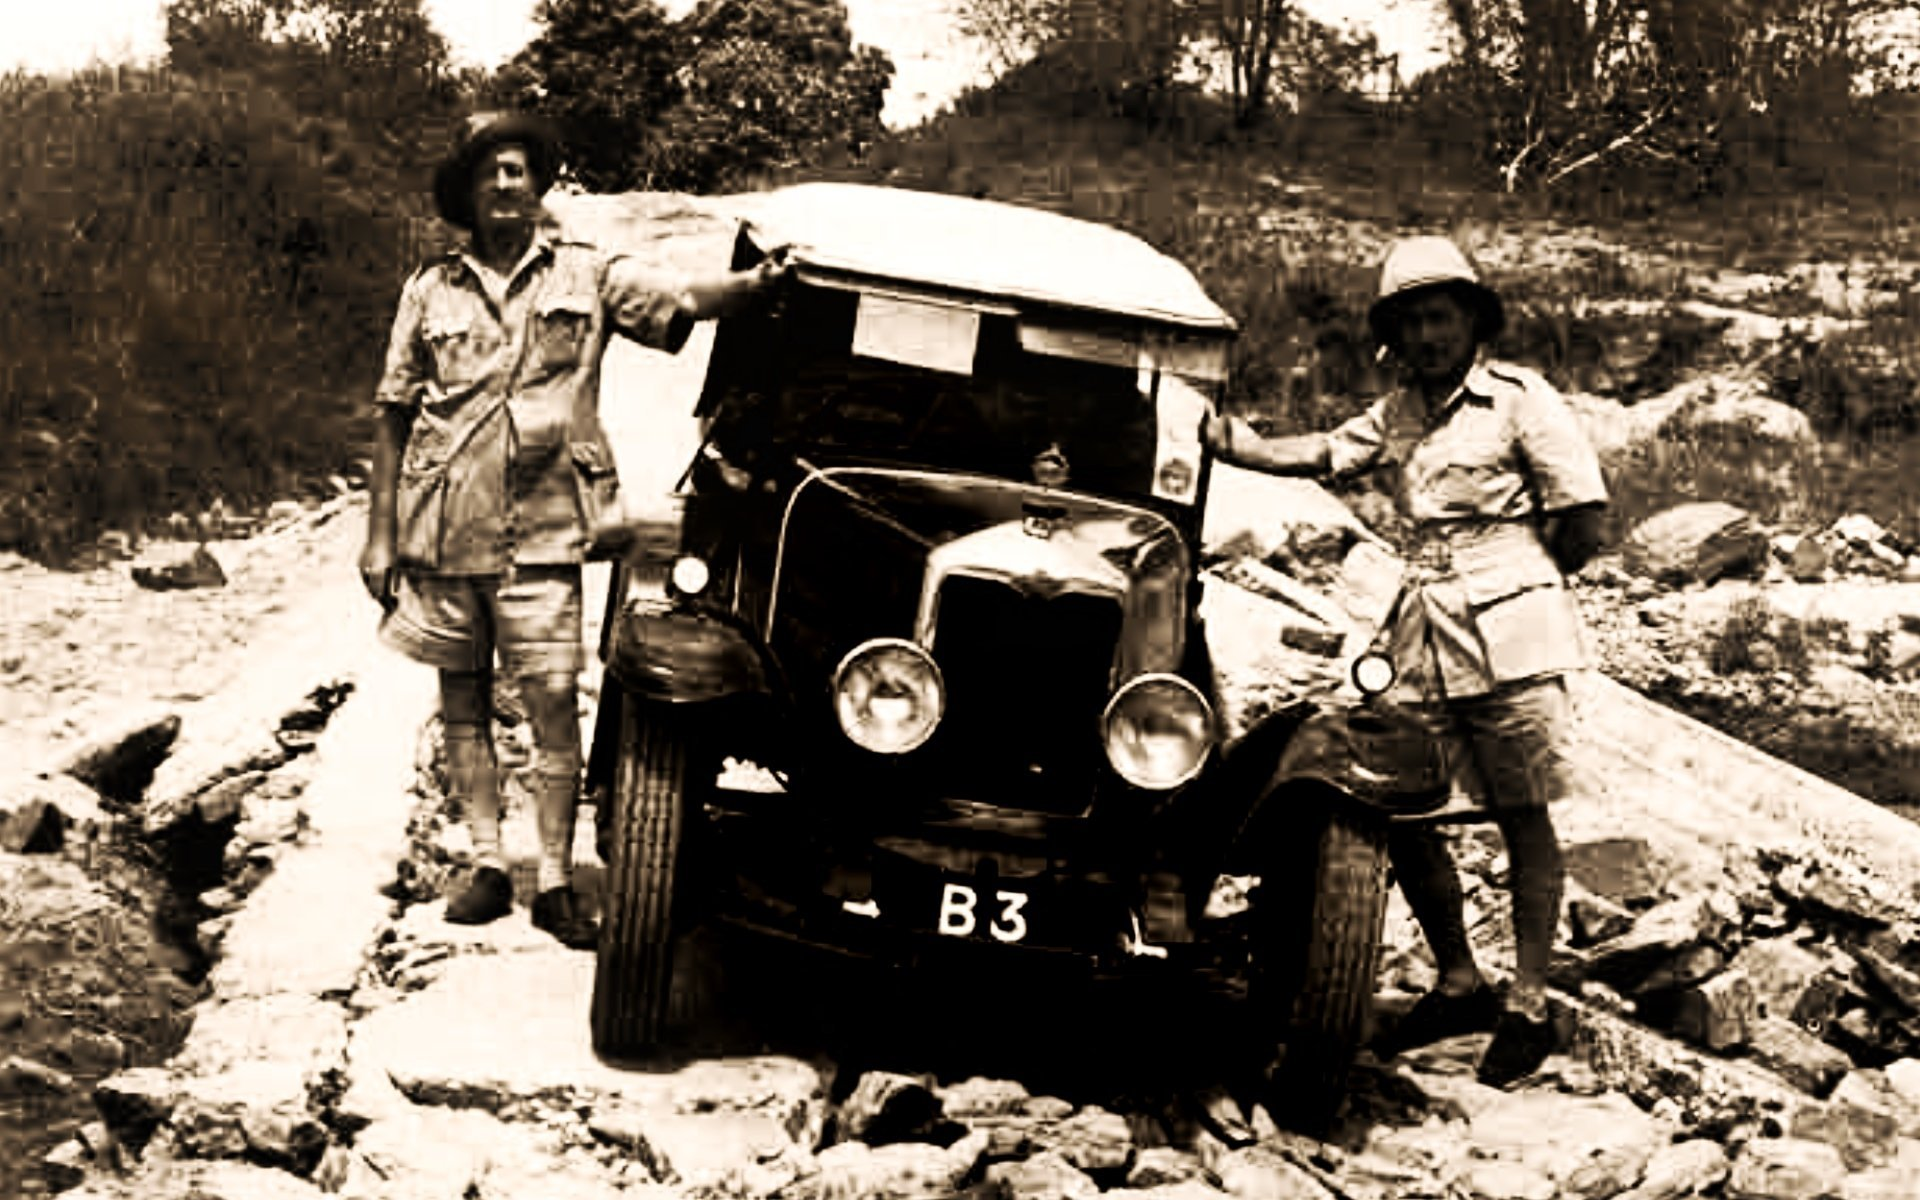 Galton and Captain Gethin in 1926 with the Riley 12/50 from the Riley Motor Car Co. Ltd. of Coventry which he used to make the maiden drive from Nairobi to Mombasa and back.